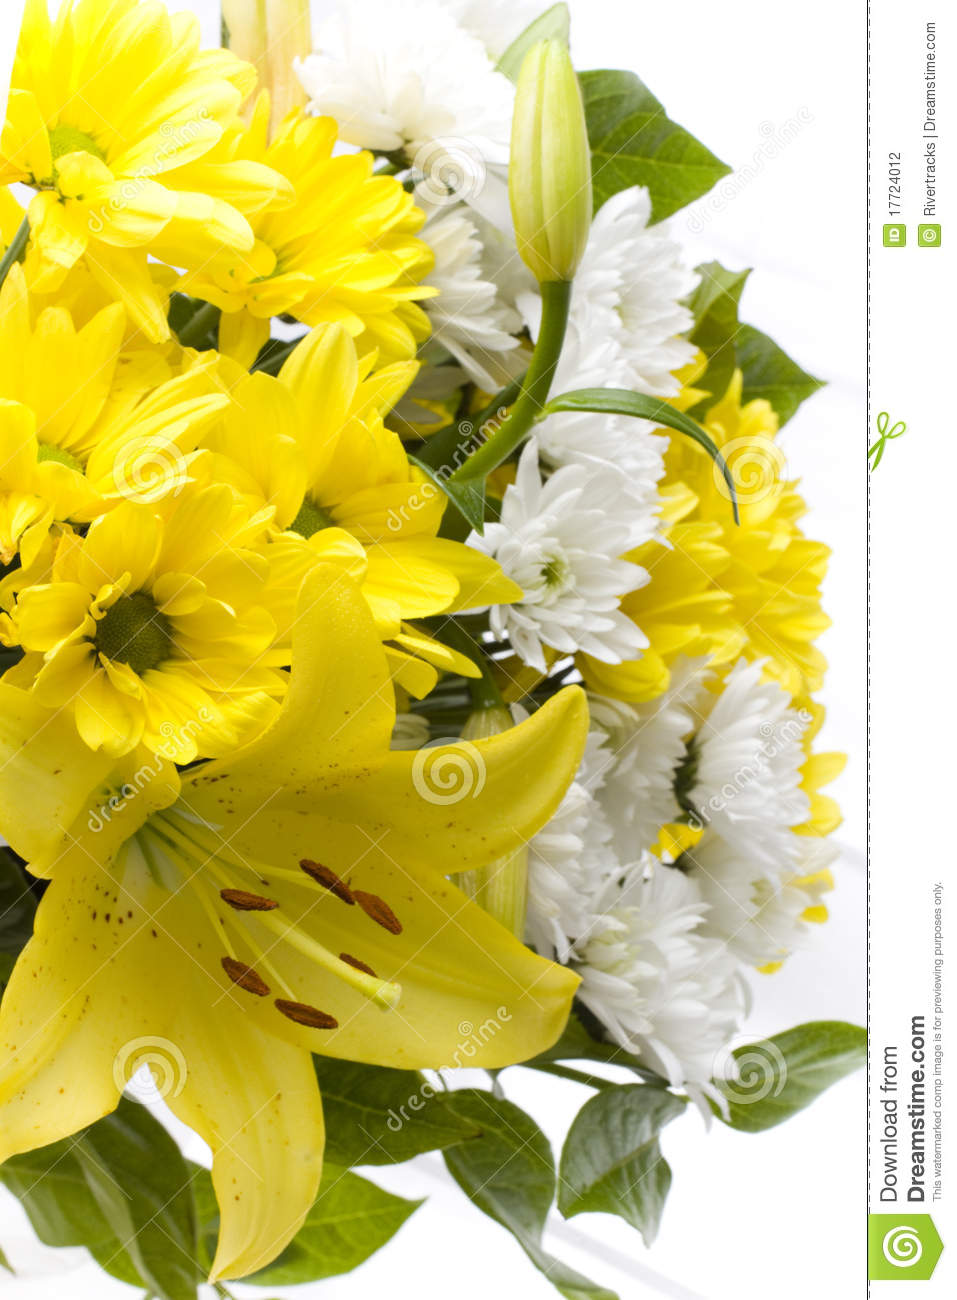 White and yellow lilium and carnation flowers stock photo image of white and yellow lilium and carnation flowers mightylinksfo